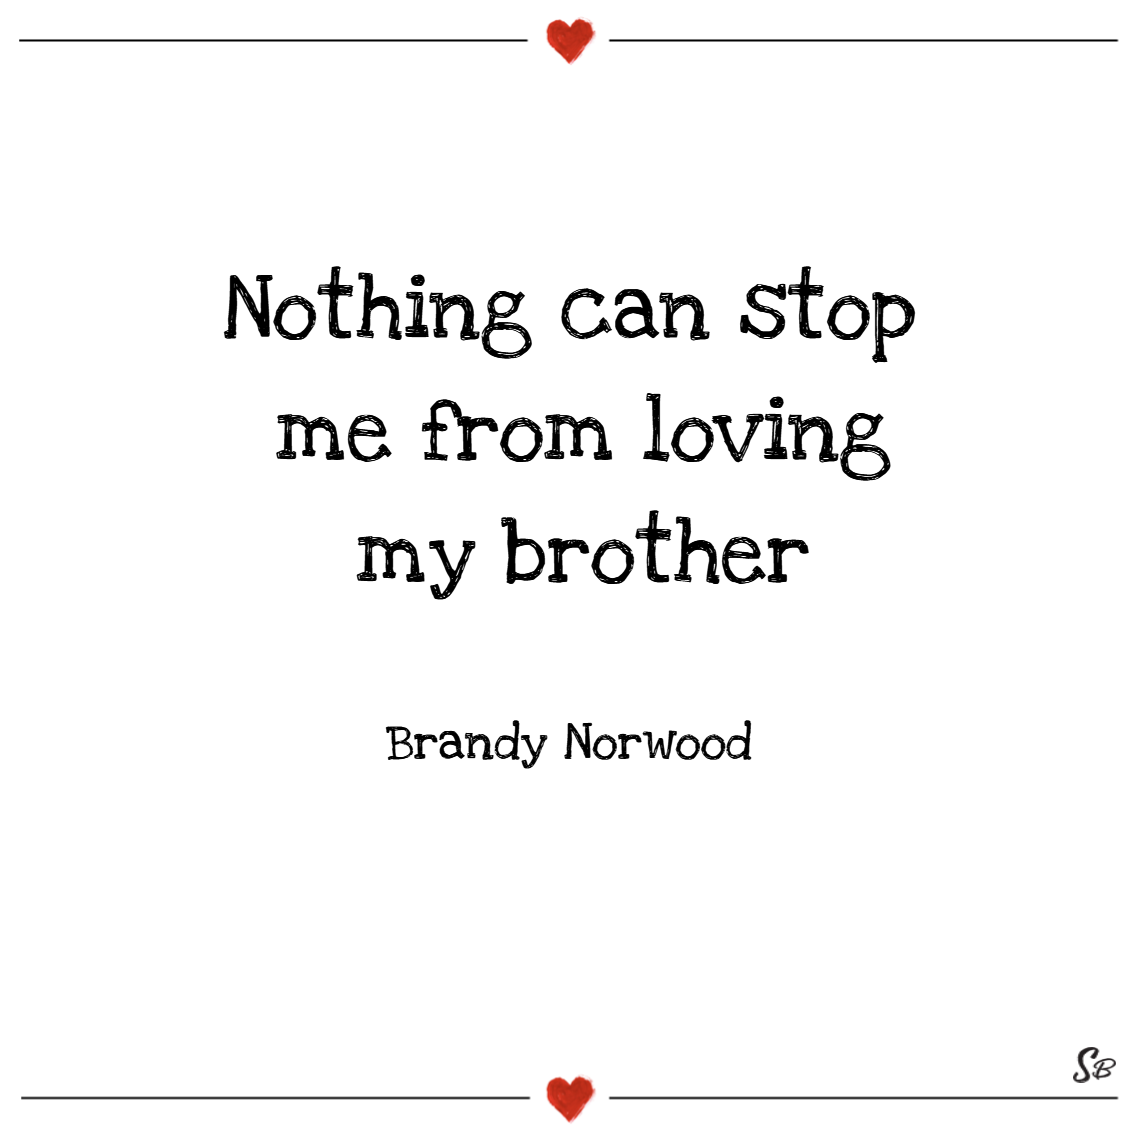 Nothing can stop me from loving my brother. – brandy norwood